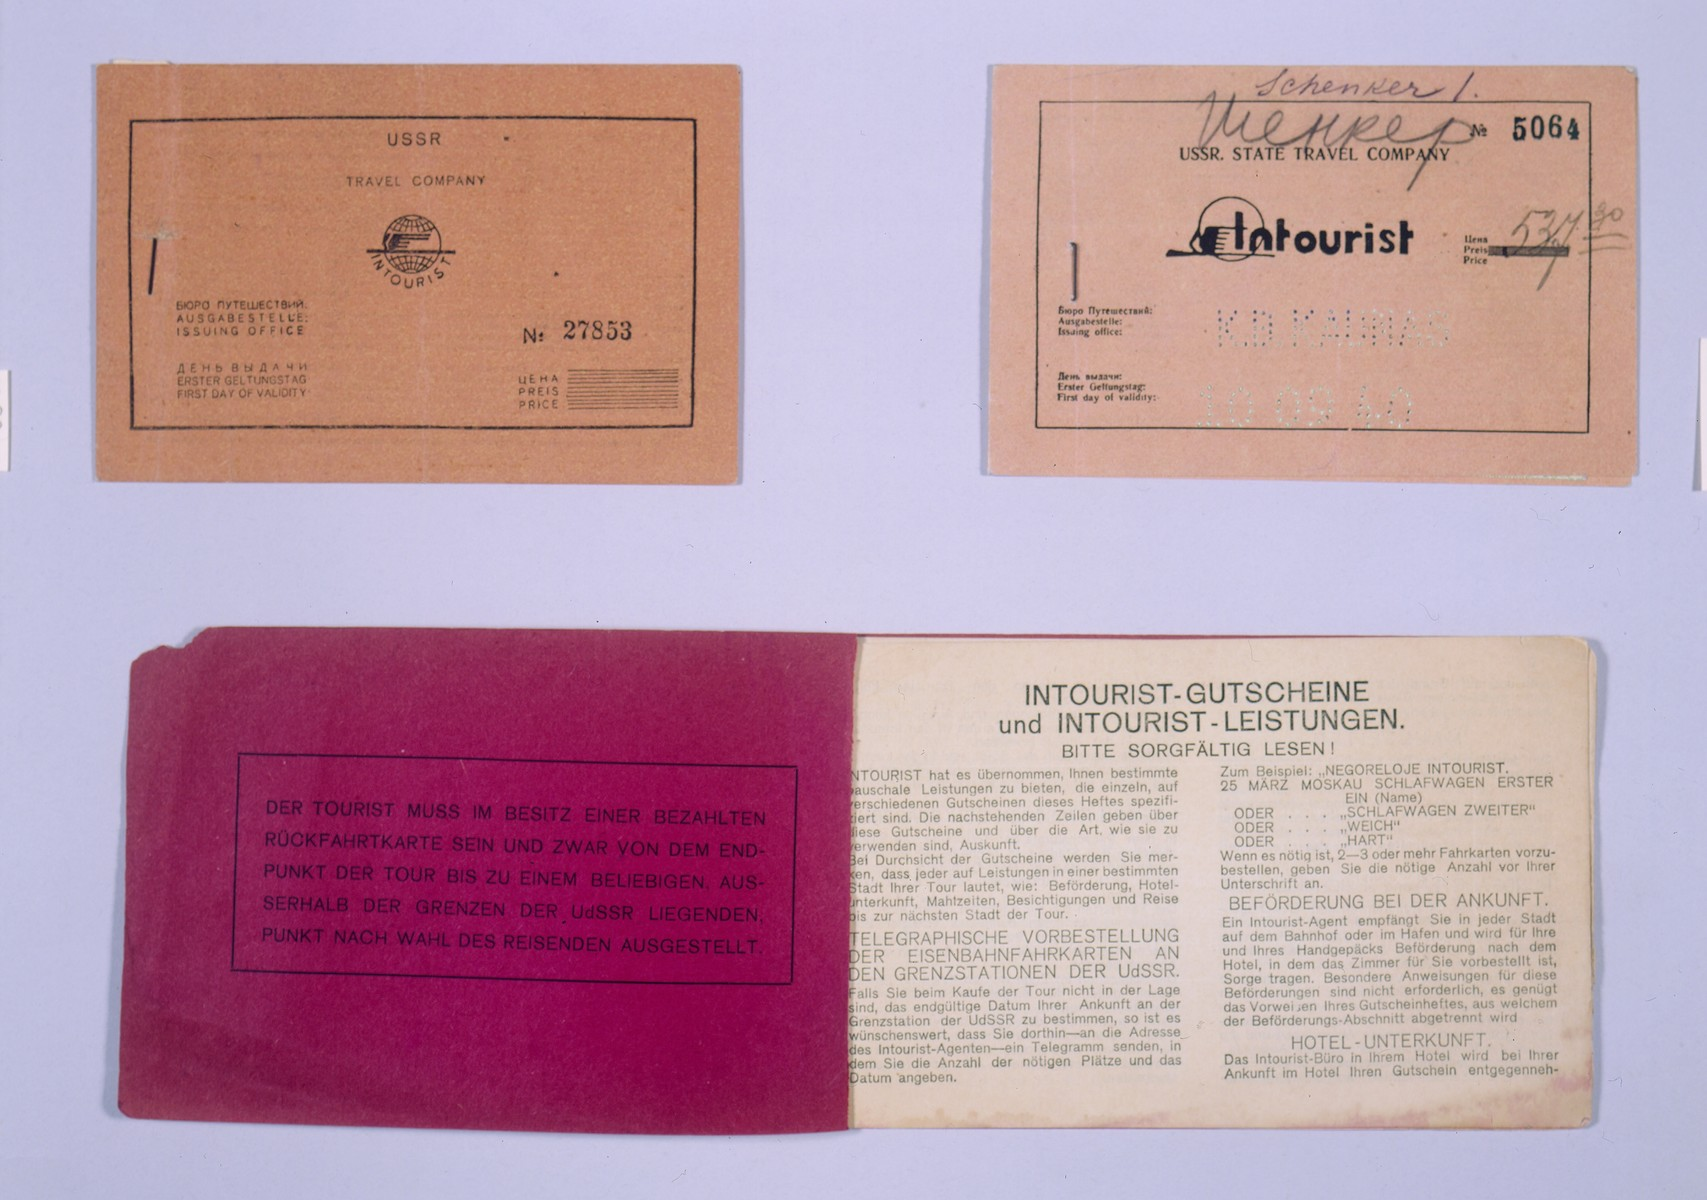 Composite photograph of three intourist tickets for the Trans-Siberian railway to Vladivostok.    1. An intourist ticket for the Trans-Siberian railway to Vladivostok, purchased in the United States for $99.95 by one of Leon Pommer's sisters, dated January 29, 1941(Pommer collection, top left).  2. An intourist ticket for the Trans-Siberian railway to Vladivostok dated October 9, 1940 purchased for $83.16 (Schenker collection, top right).  3. A third class intourist ticket book containing coupons for lunch and dinner (Nowogrodzki collection, bottom).